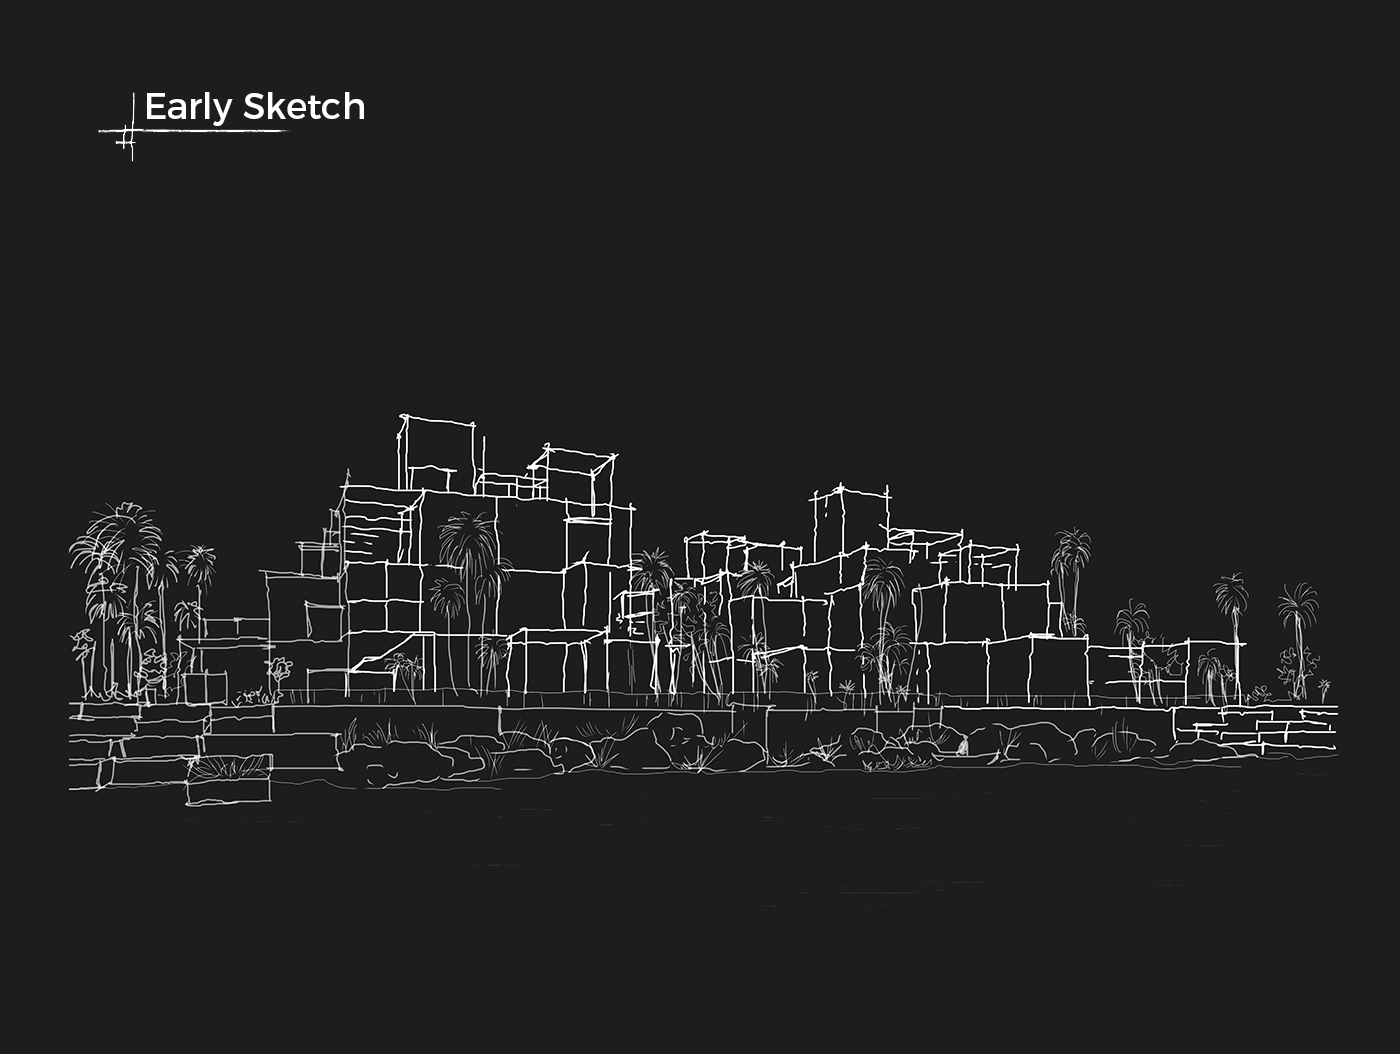 architectural sketch drawing